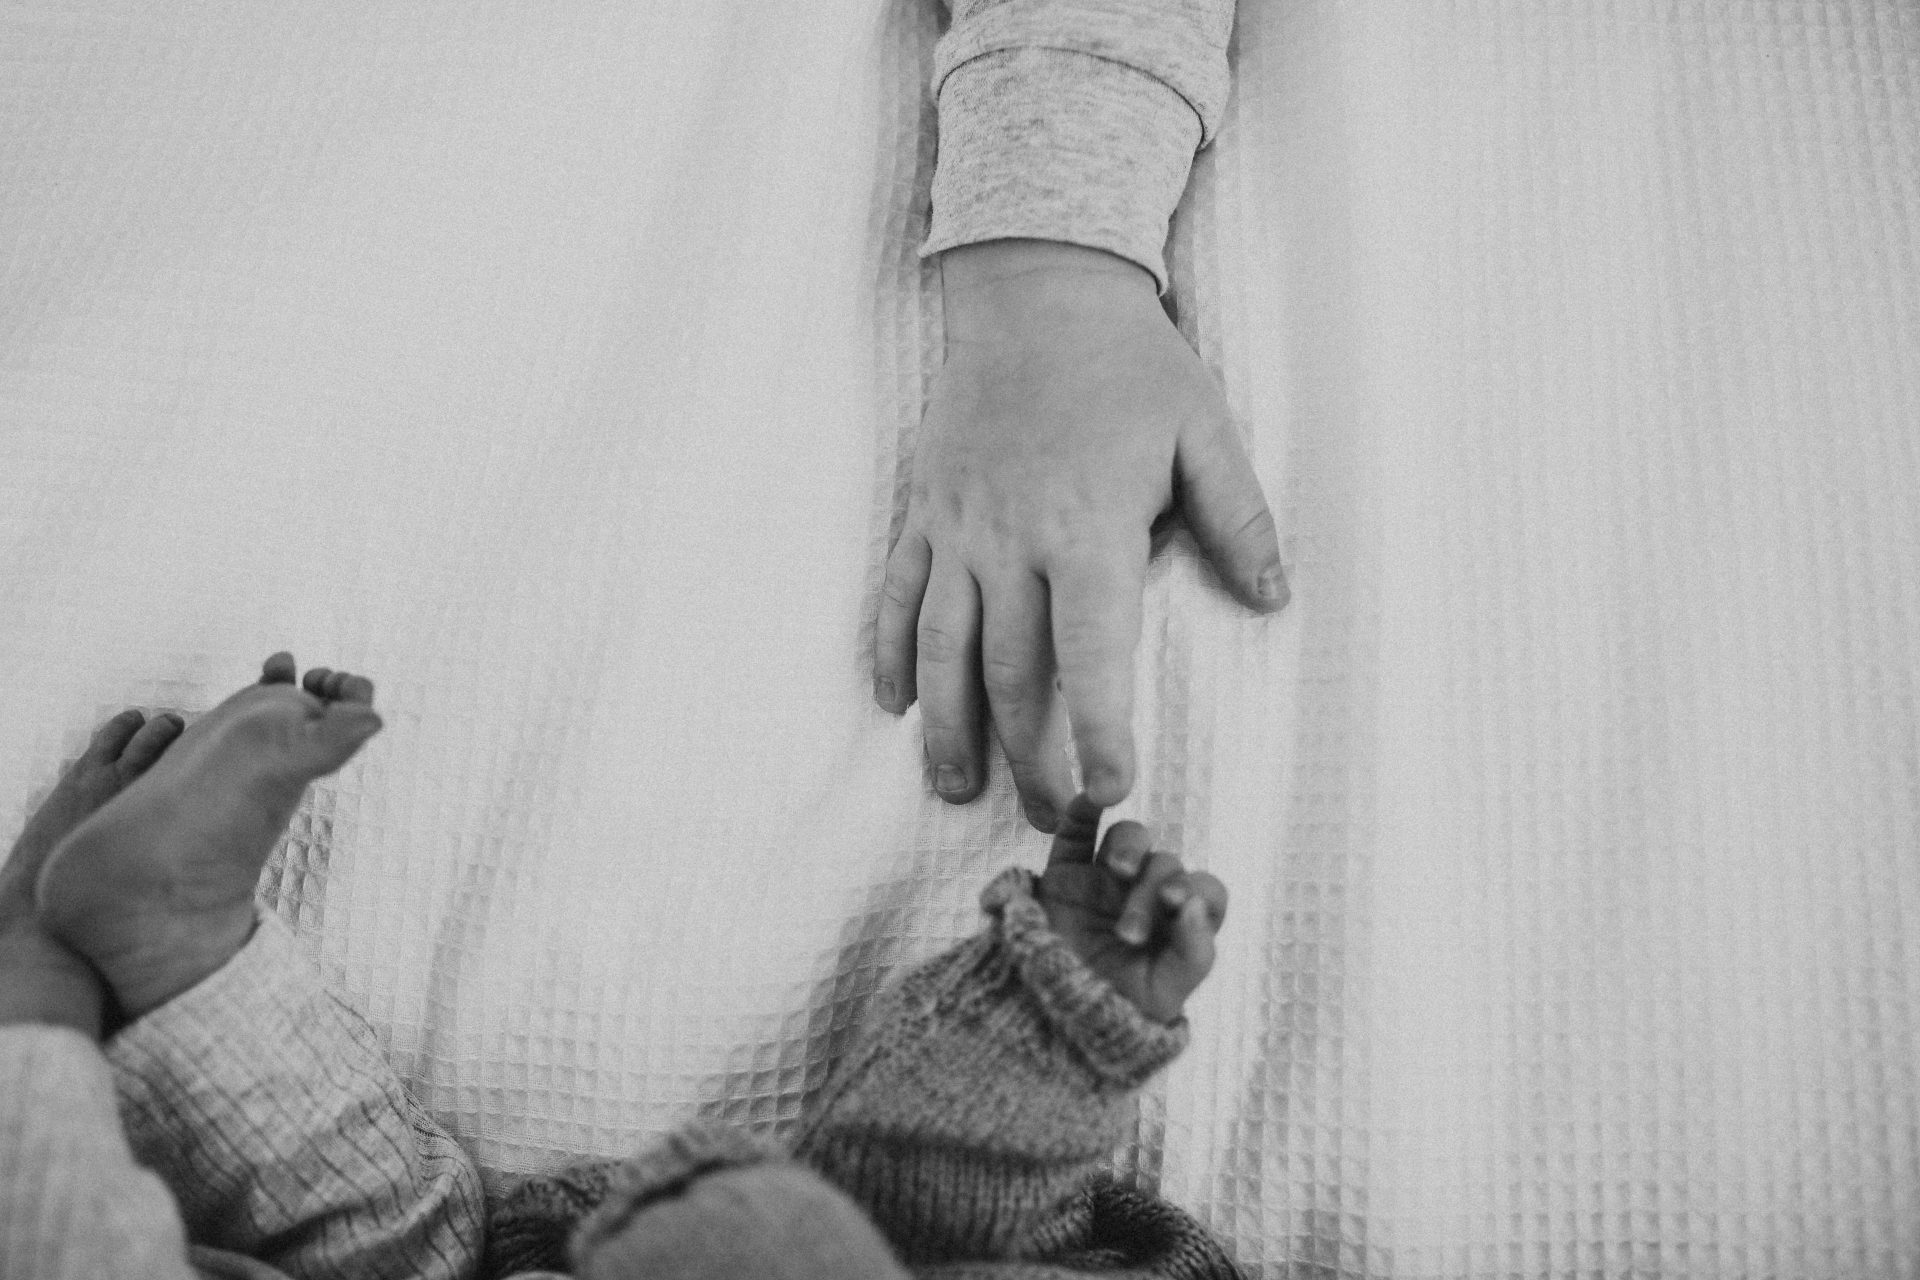 Boy's hand reaching out to newborn baby's hand